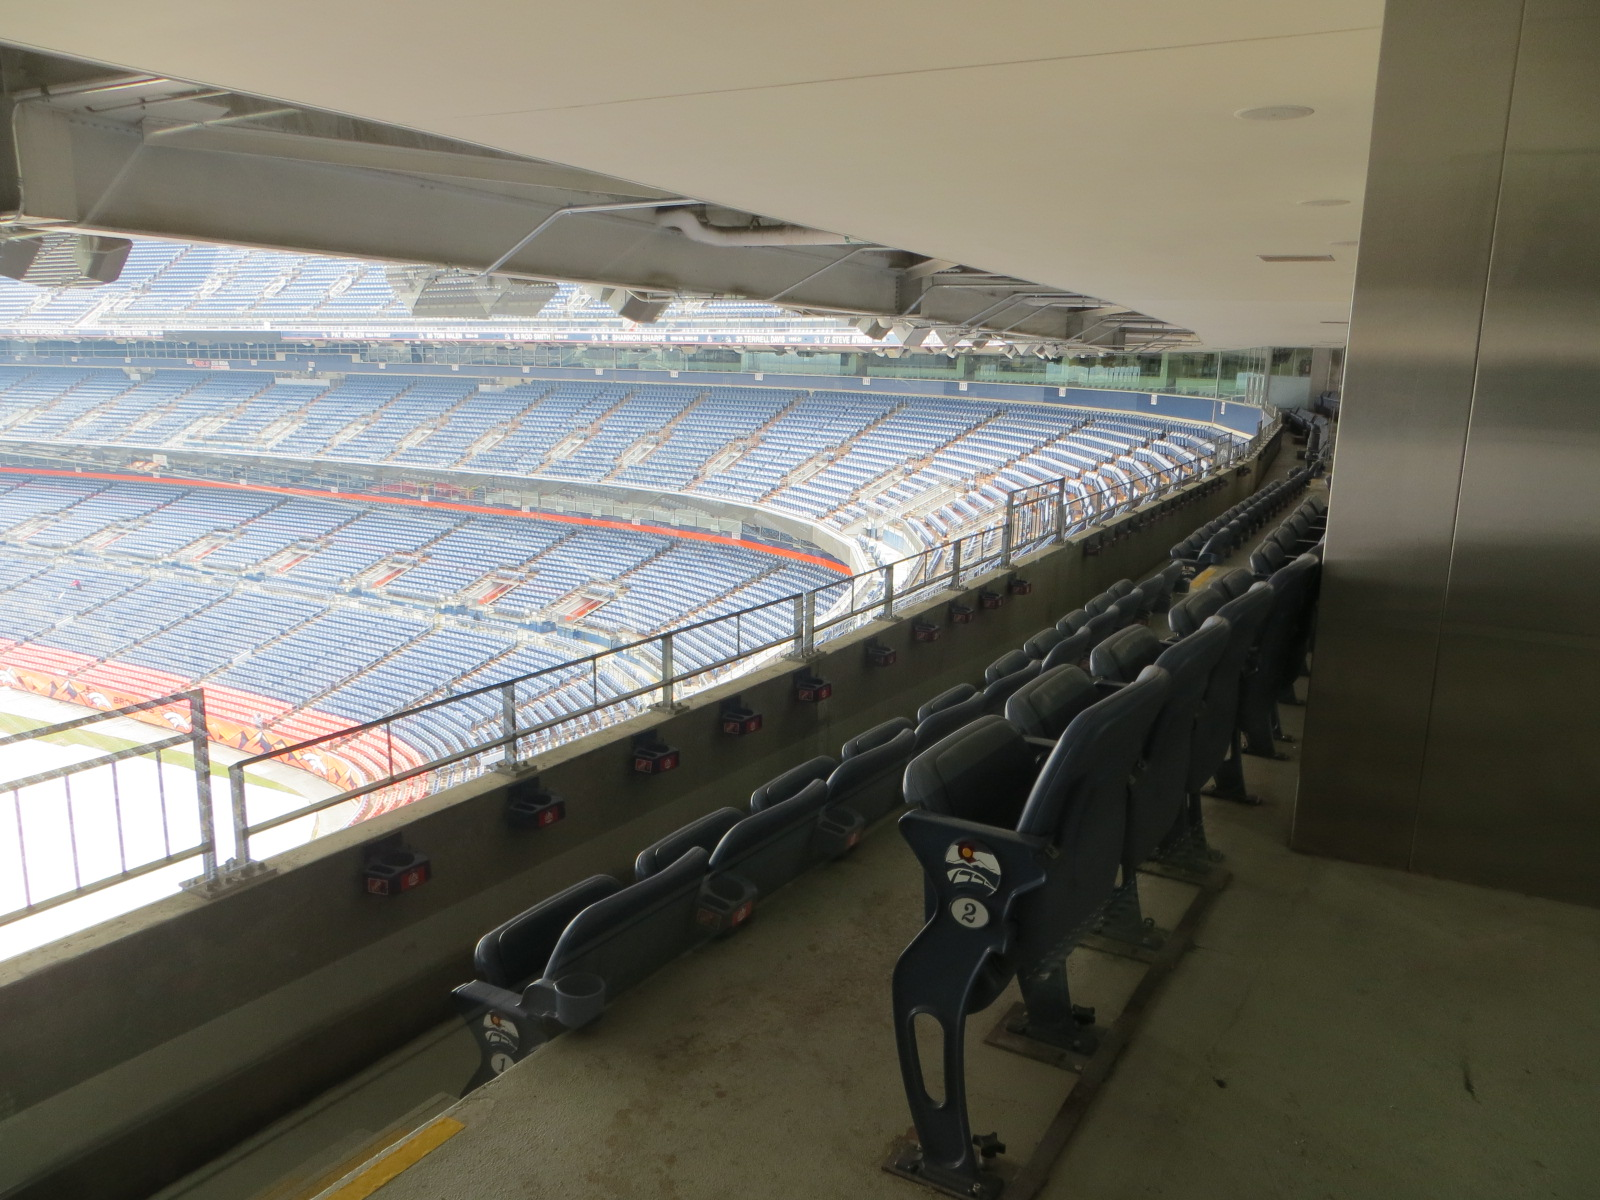 secrets of sports authority field at mile high stadium where unlike coors field where the seats that are a mile high are purple at sports authority field those seats are the same color as all the others